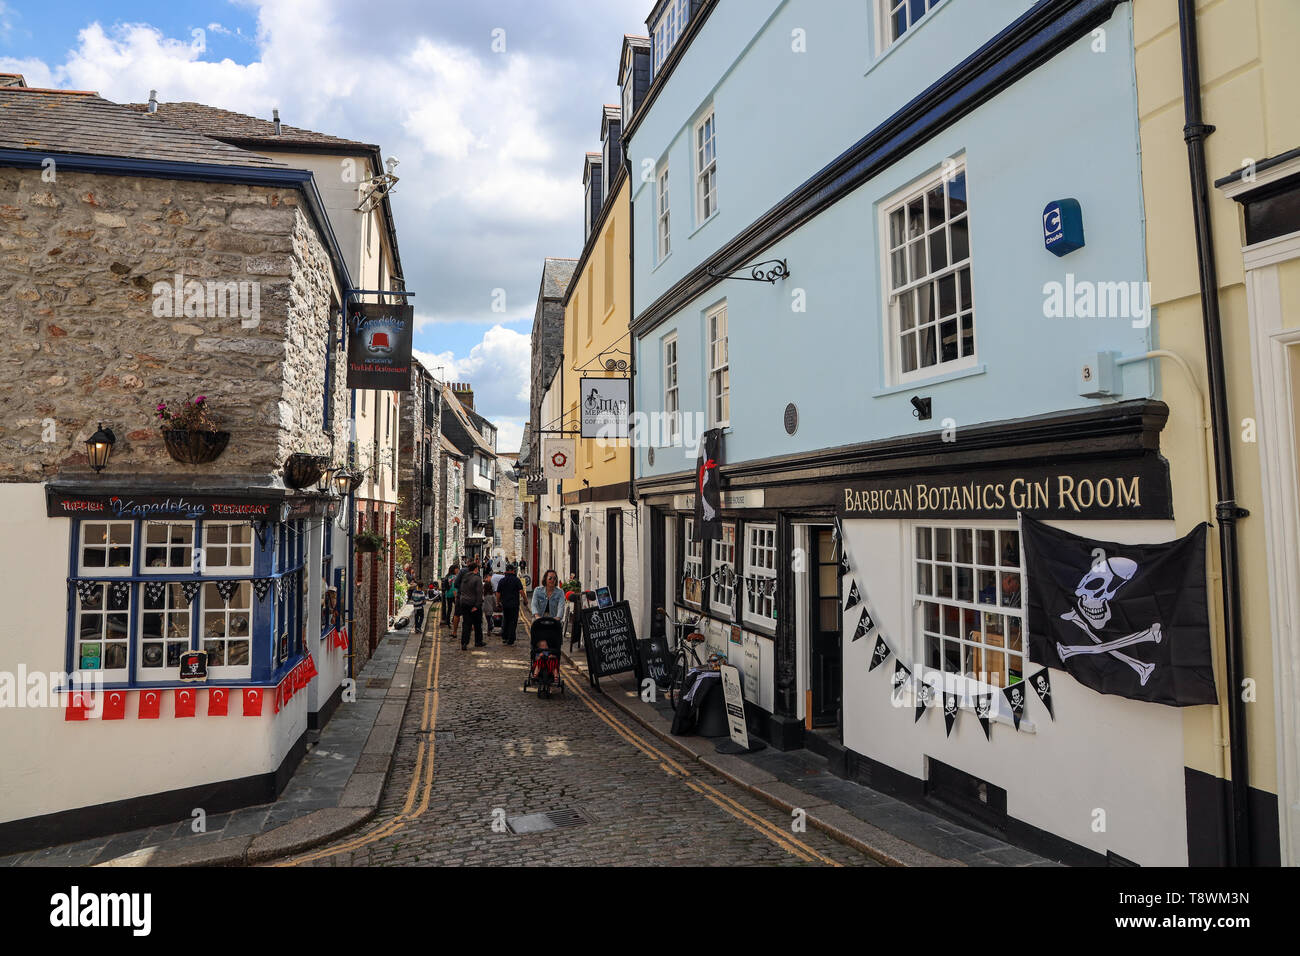 Cobbled New Street on Plymouth's historic Barbican. Features Tudor buildings. Shops, restaurants and gin bar - Stock Image